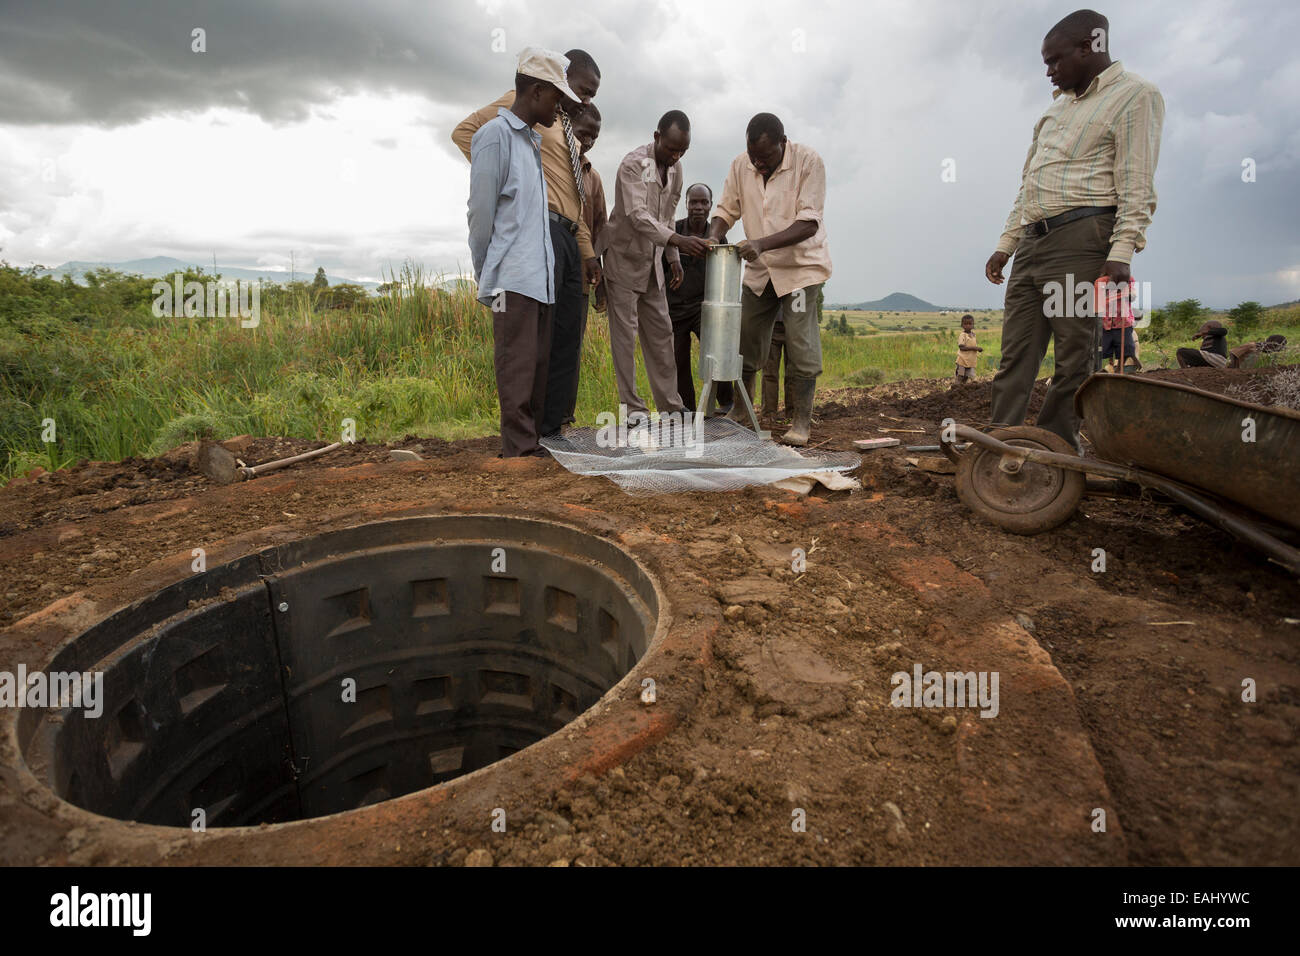 Community members in Kaptali Lower village, Bukwo District, Uganda work to construct a shallow well in their community. - Stock Image